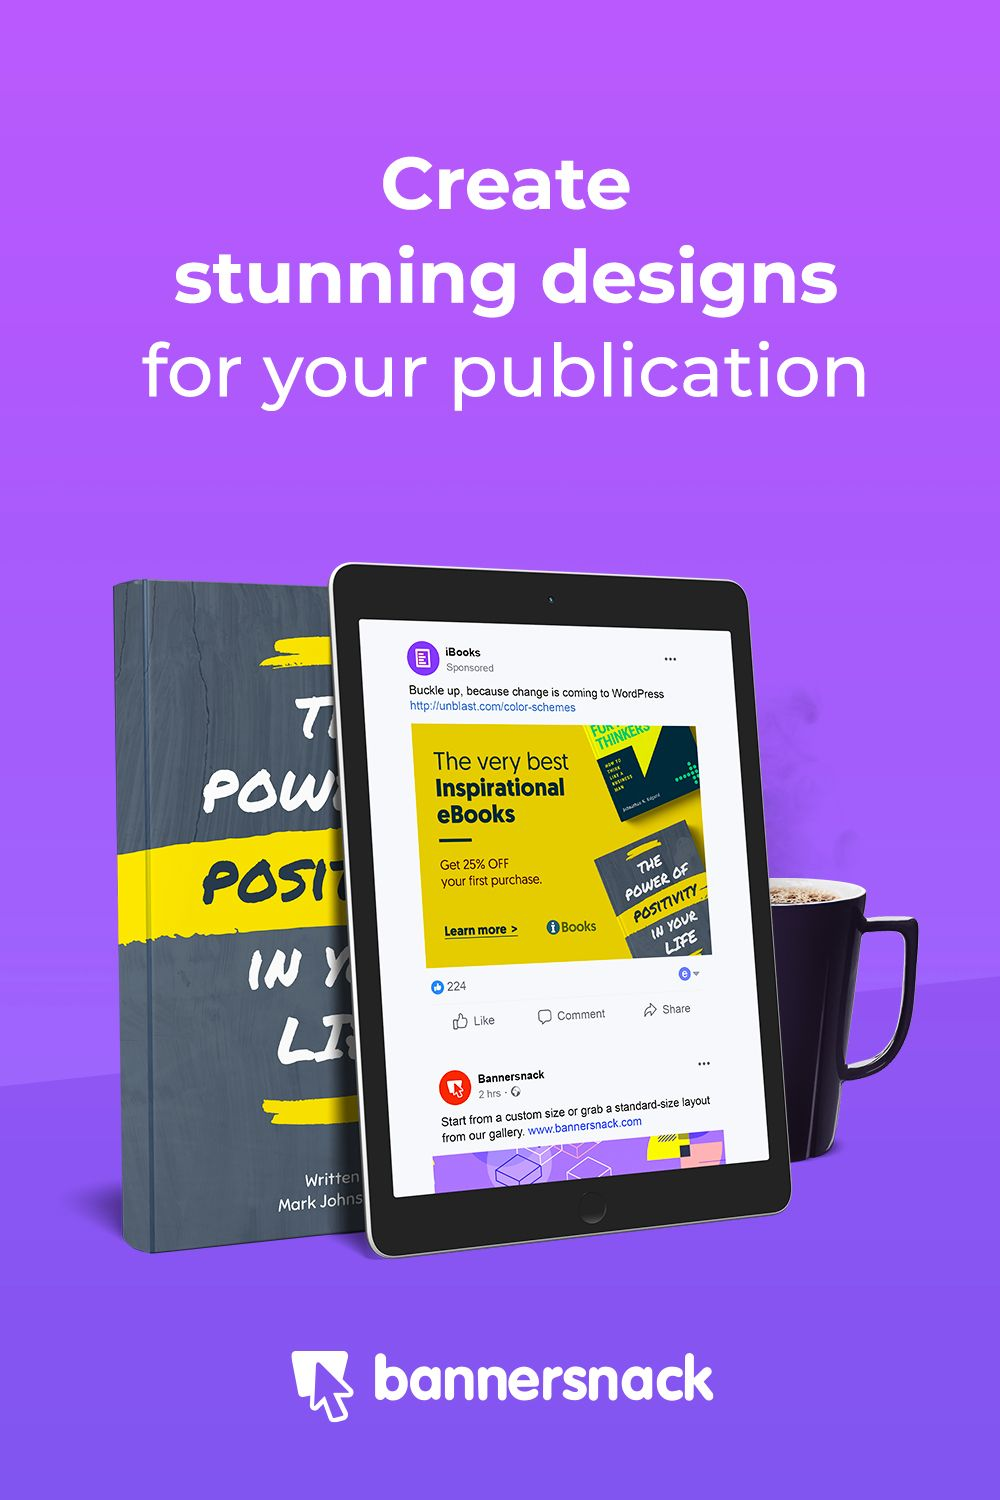 Free Online Magazine Cover Maker - Design Your Own Cover